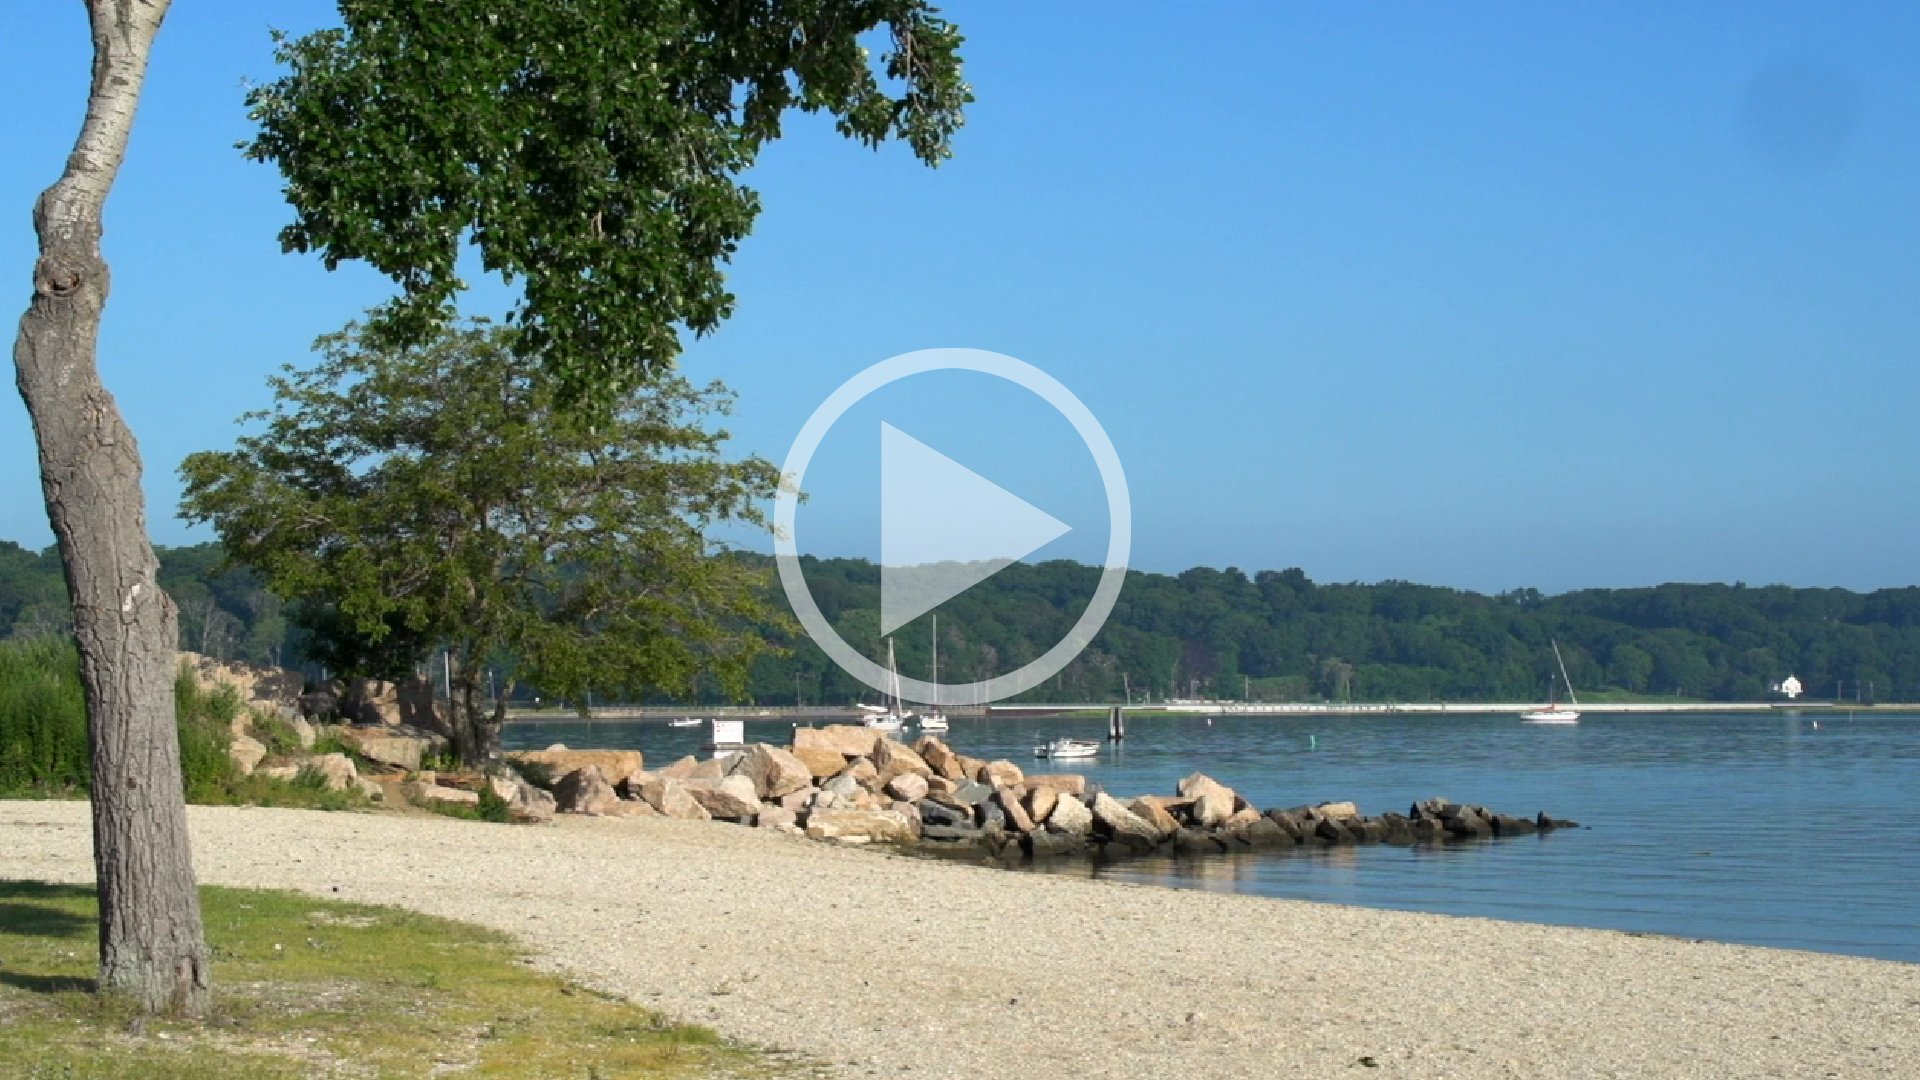 EXPLORE OYSTER BAY COVE